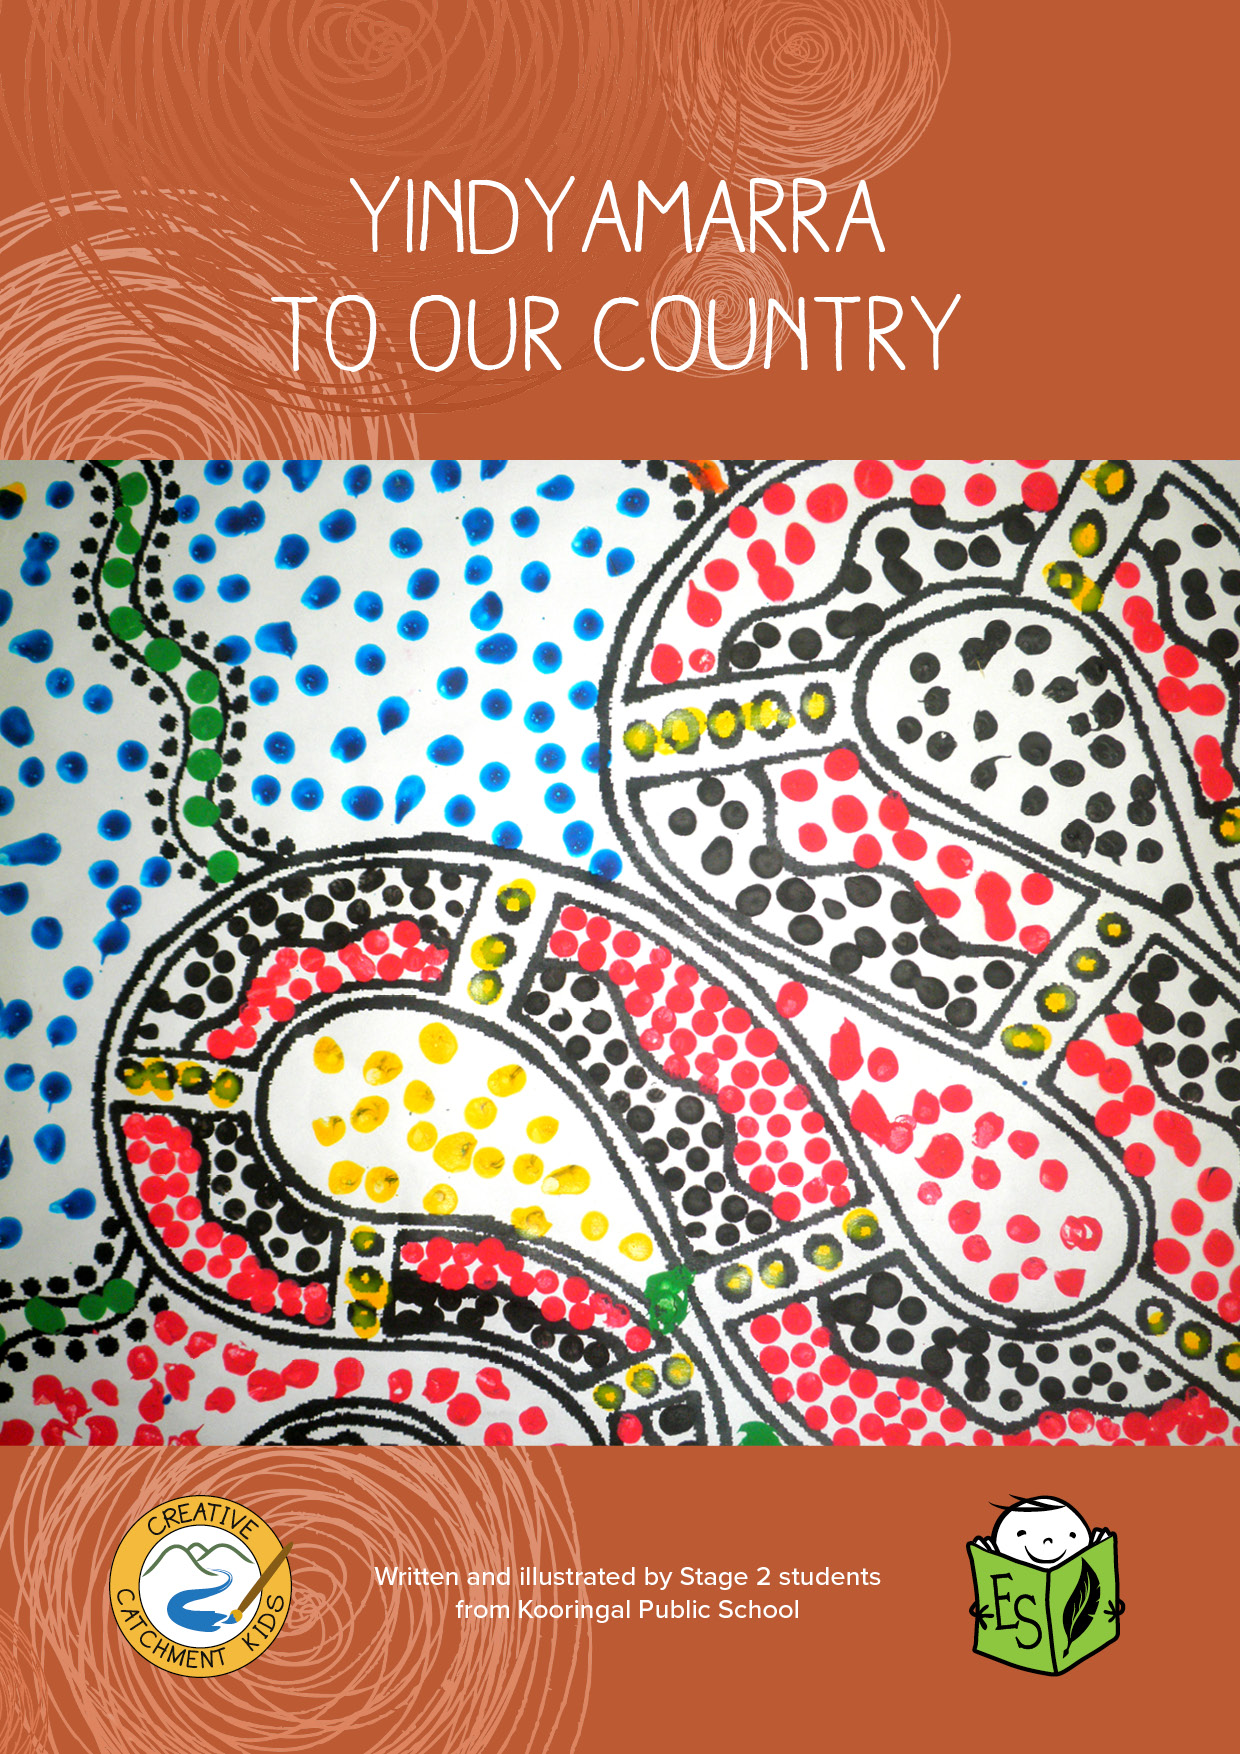 Yindyamarra to Our Country